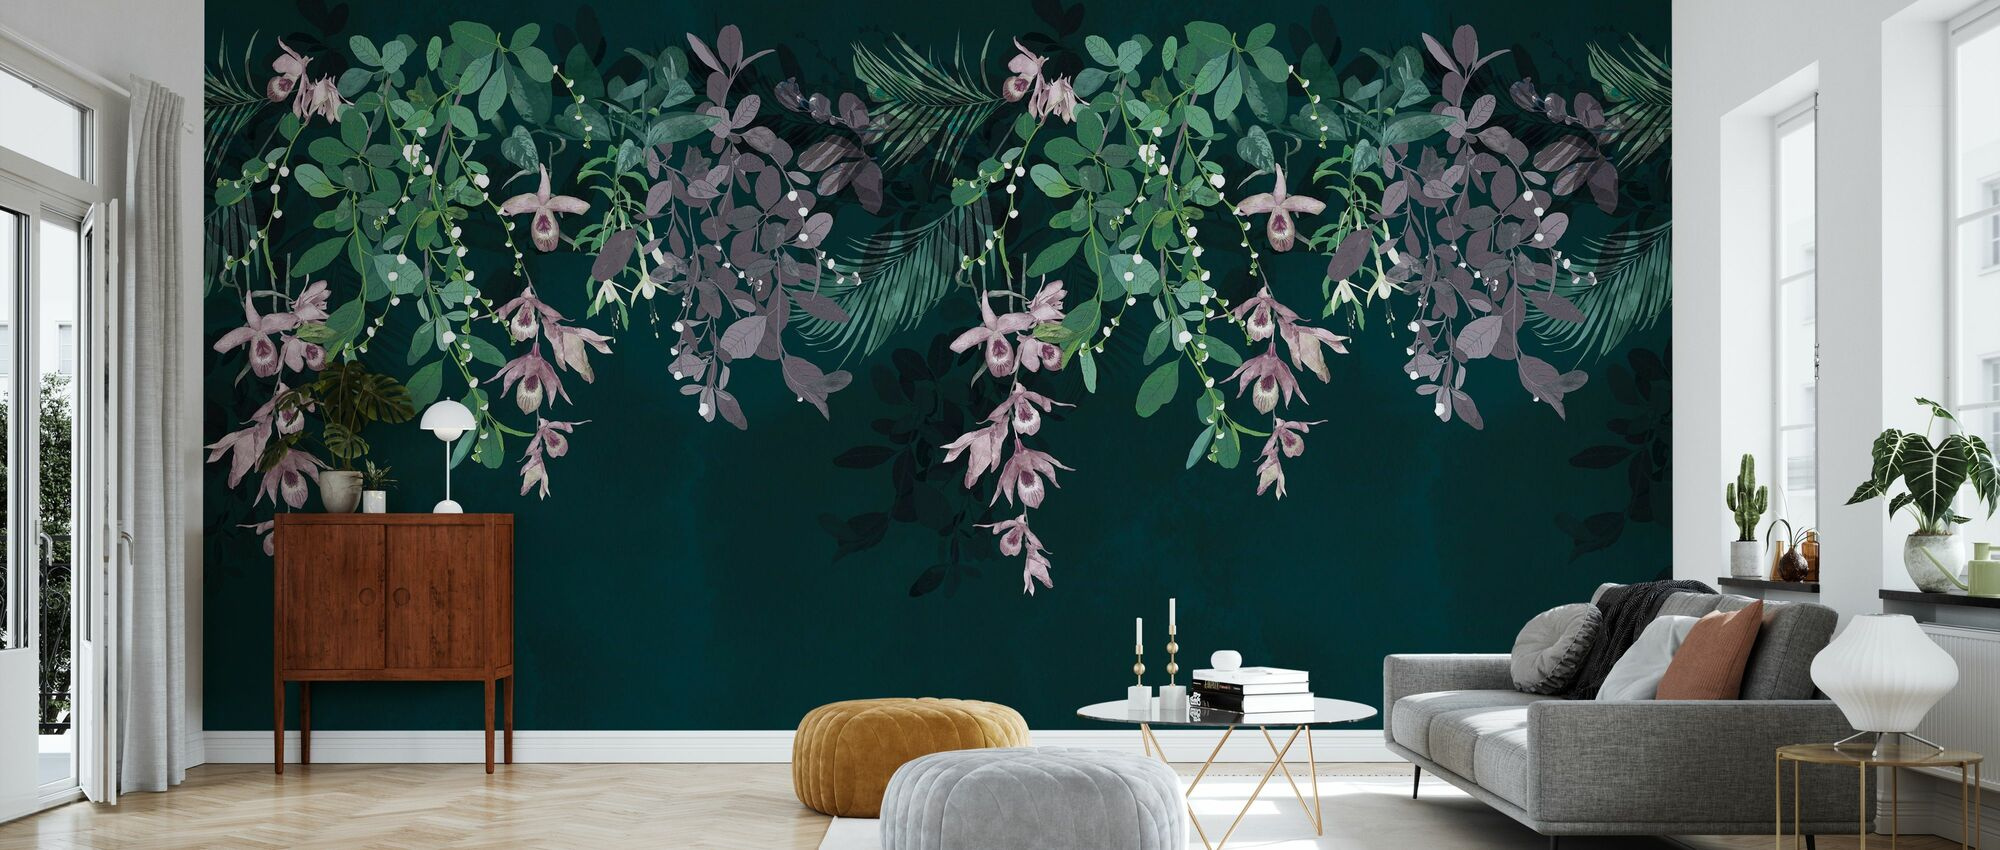 Hanging Tropical Flowers - Wallpaper - Living Room